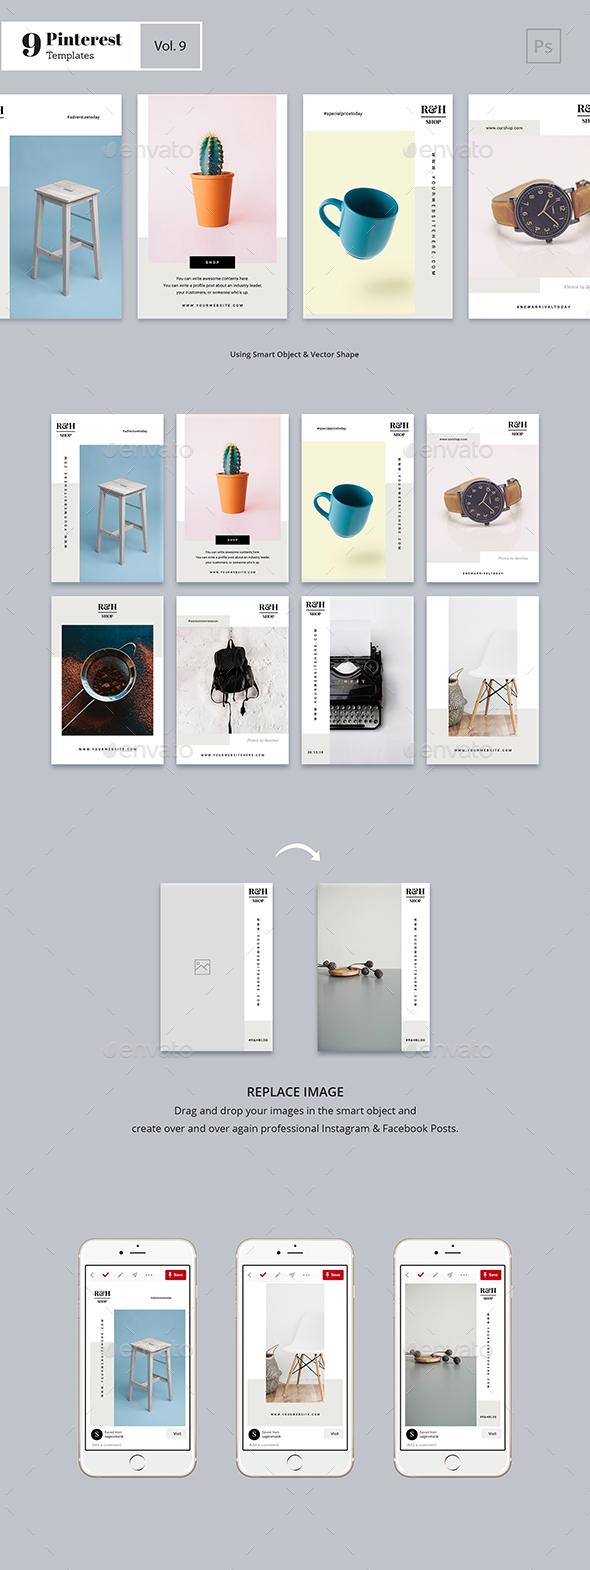 19 Pinterest PSD Graphics, Designs & Templates from GraphicRiver